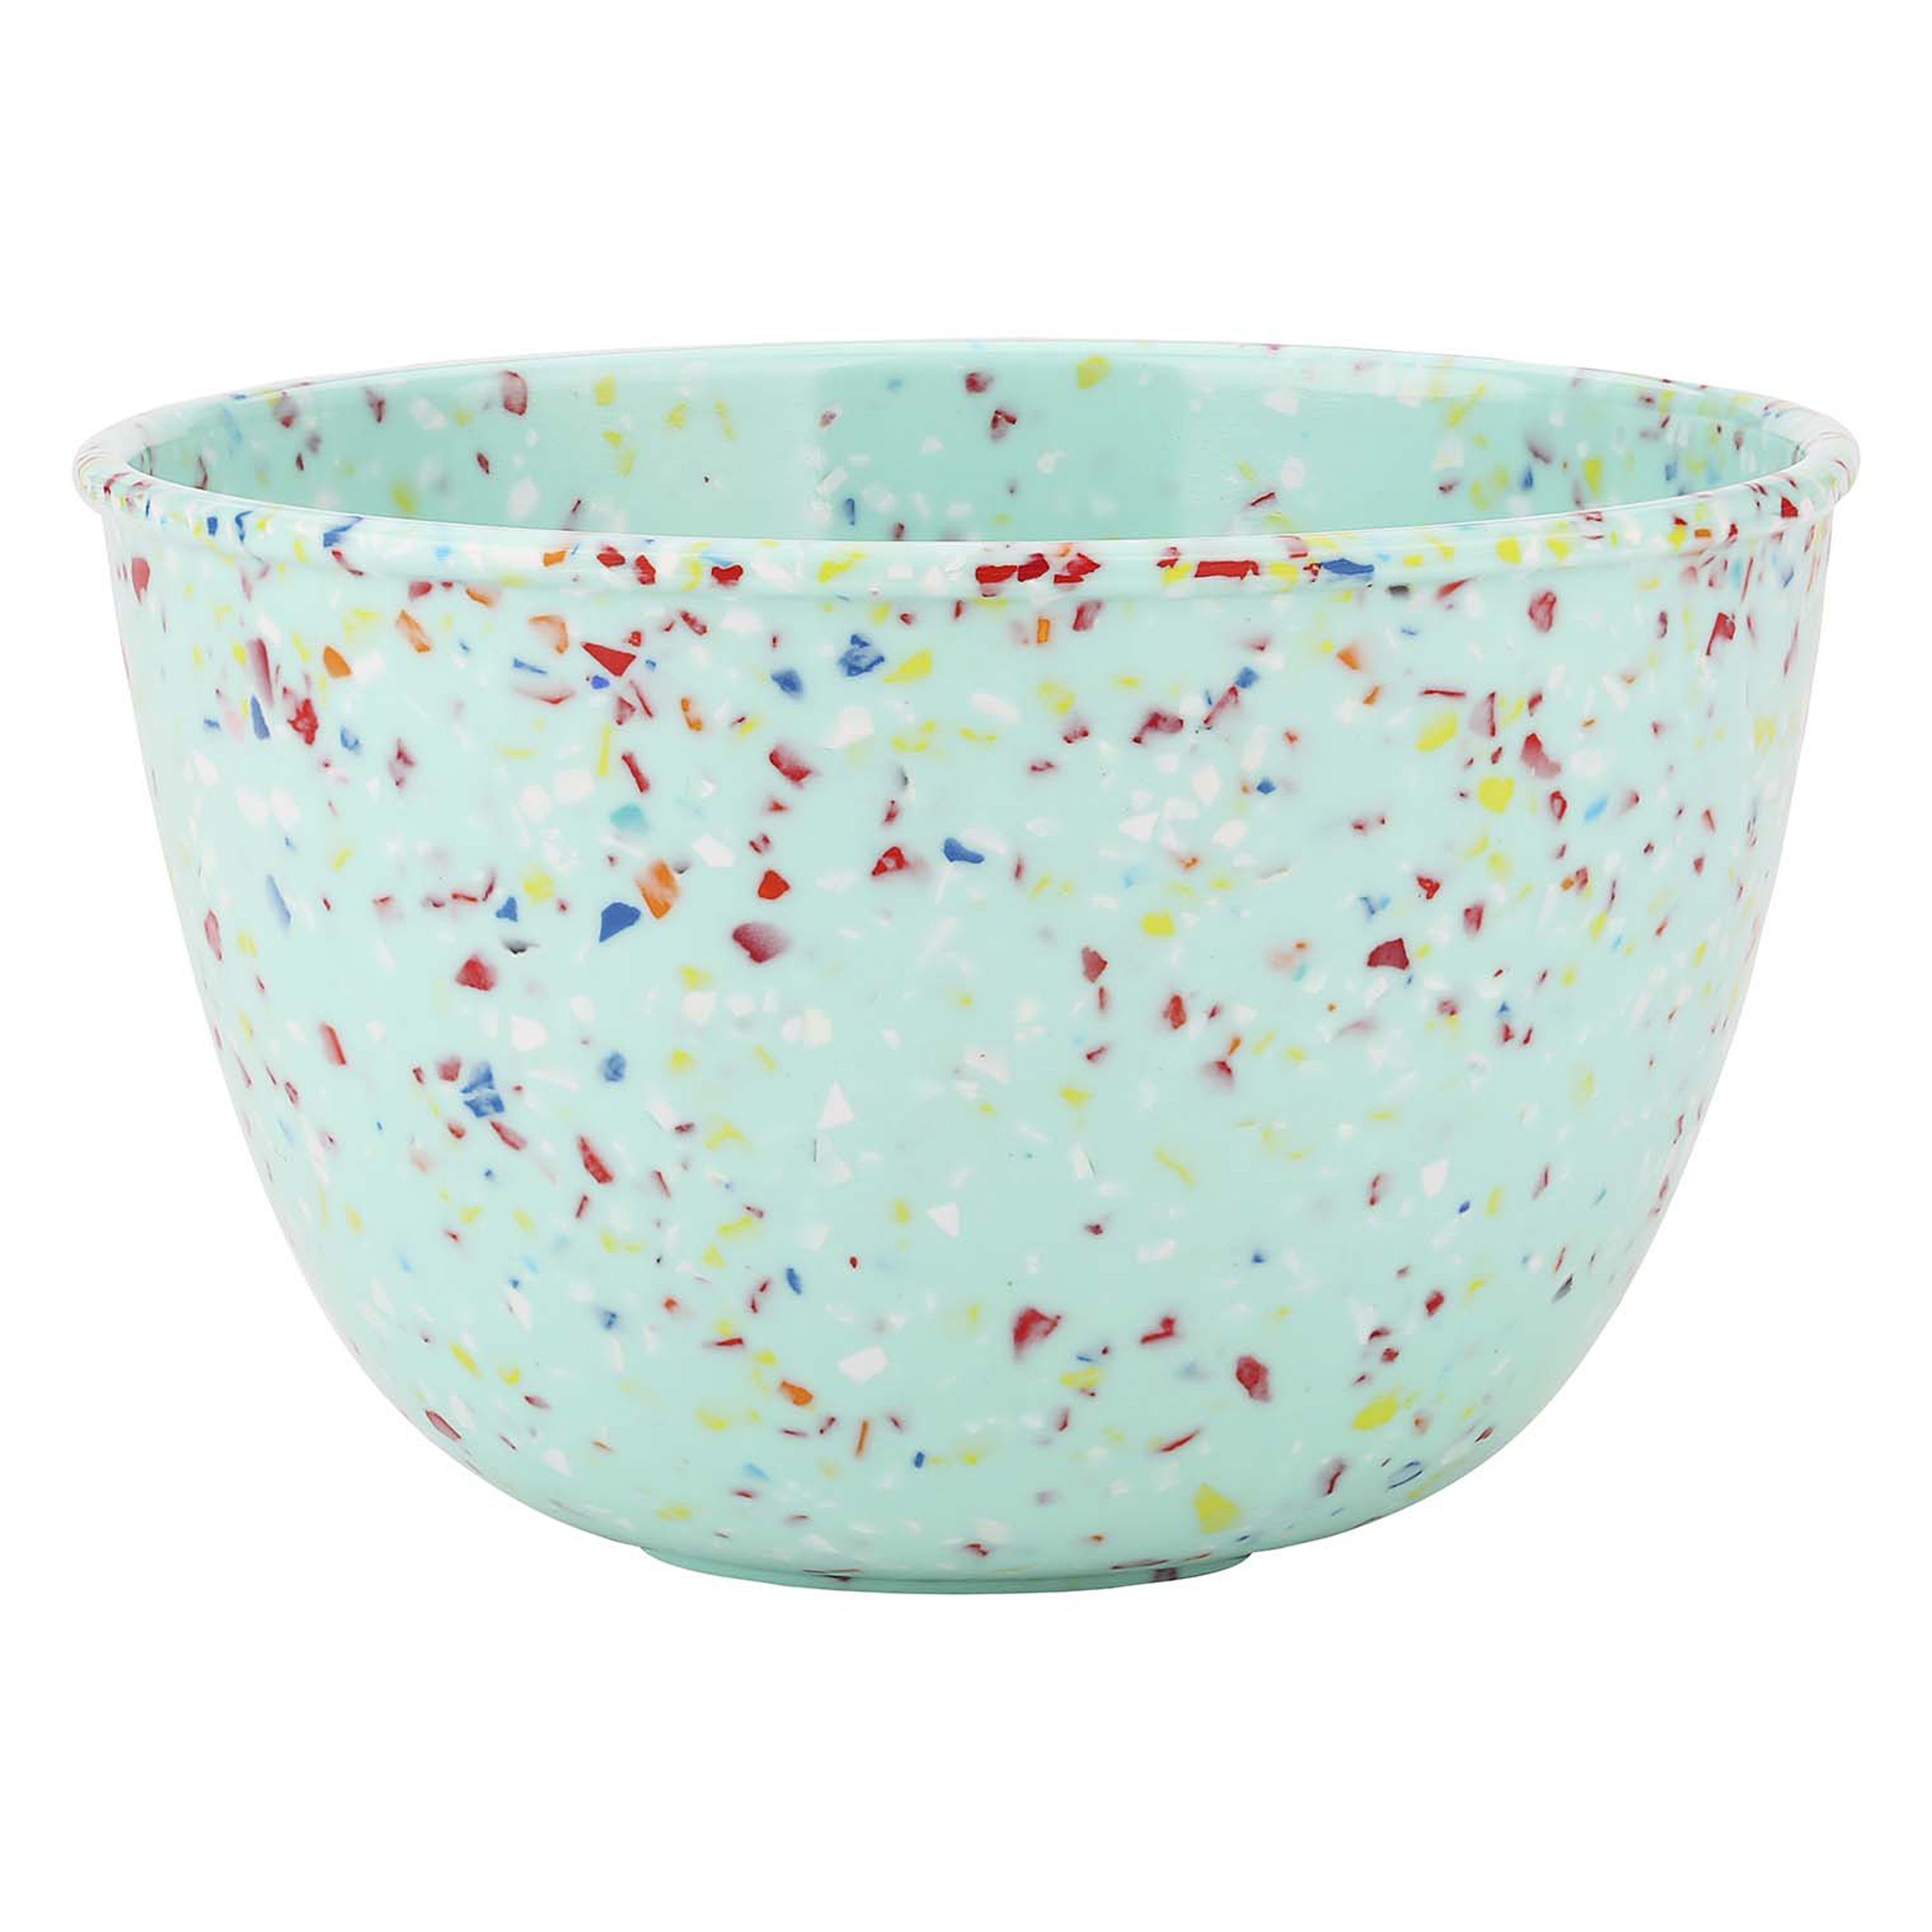 Confetti 24 ounce Soup Bowl, Mint, 6-piece set slideshow image 14